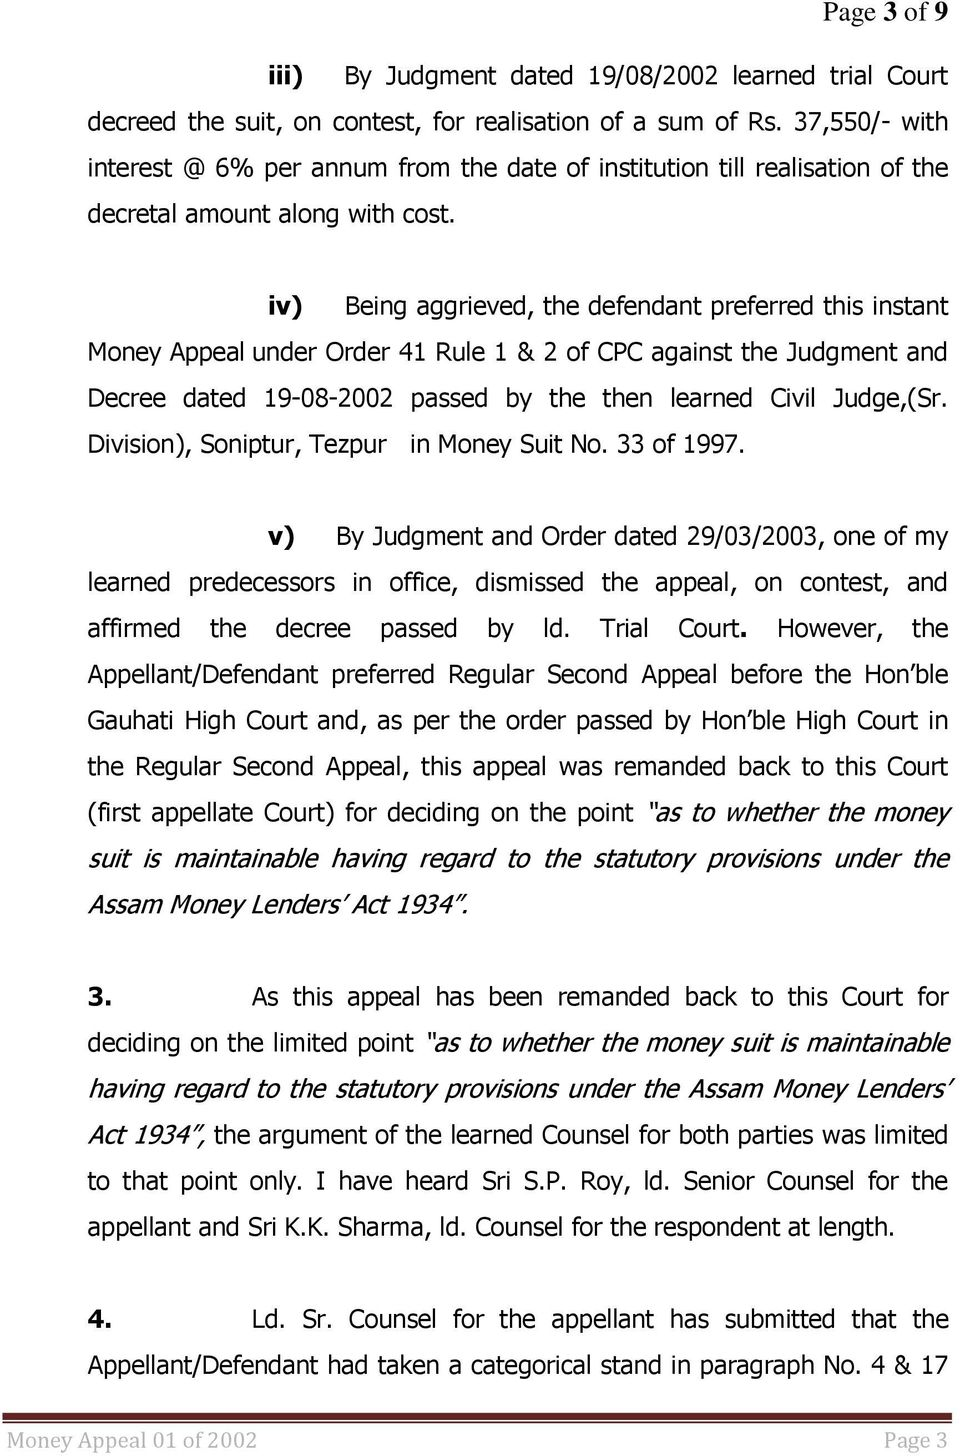 iv) Being aggrieved, the defendant preferred this instant Money Appeal under Order 41 Rule 1 & 2 of CPC against the Judgment and Decree dated 19-08-2002 passed by the then learned Civil Judge,(Sr.